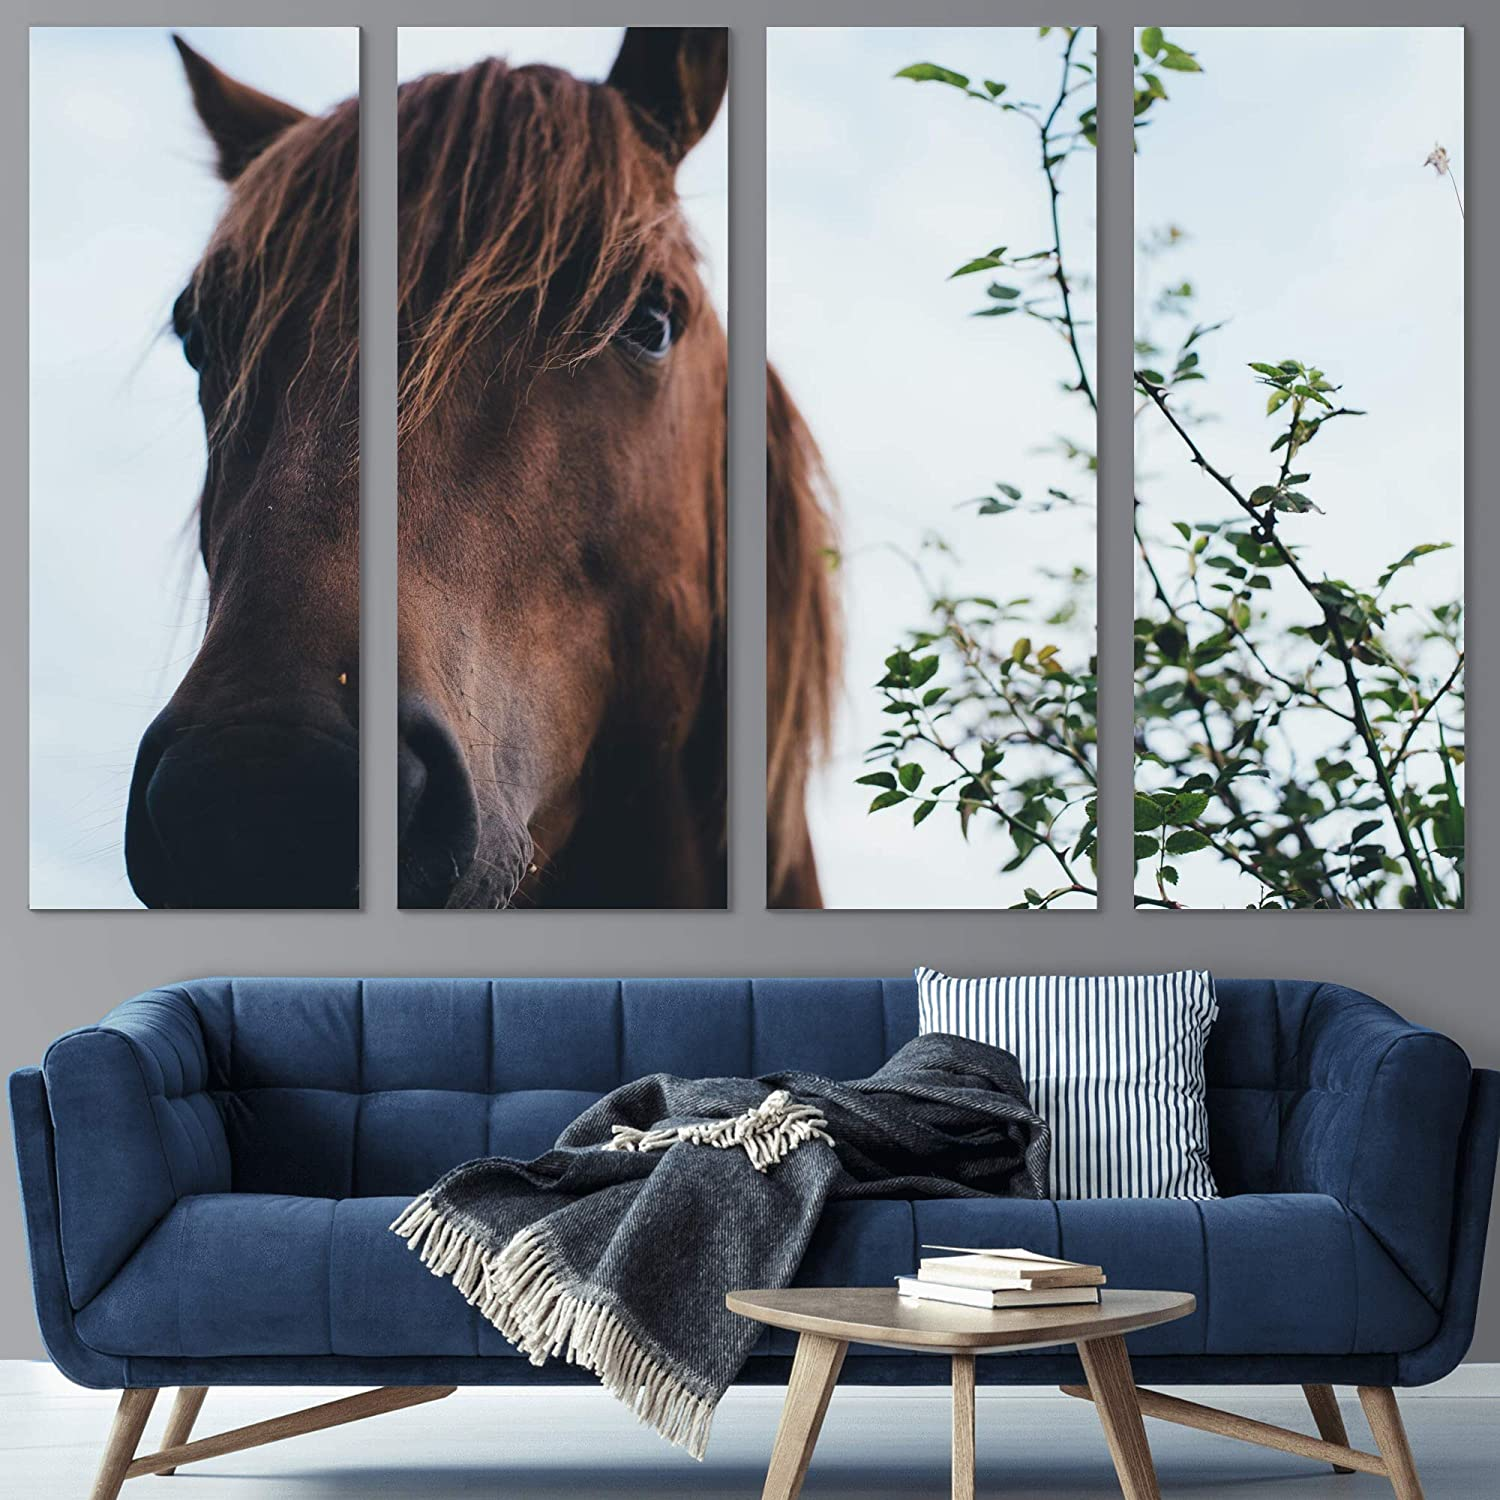 Color-Banner 4 Pieces Modern Canvas Art into Excellence Looking Horse Wall Super Special SALE held